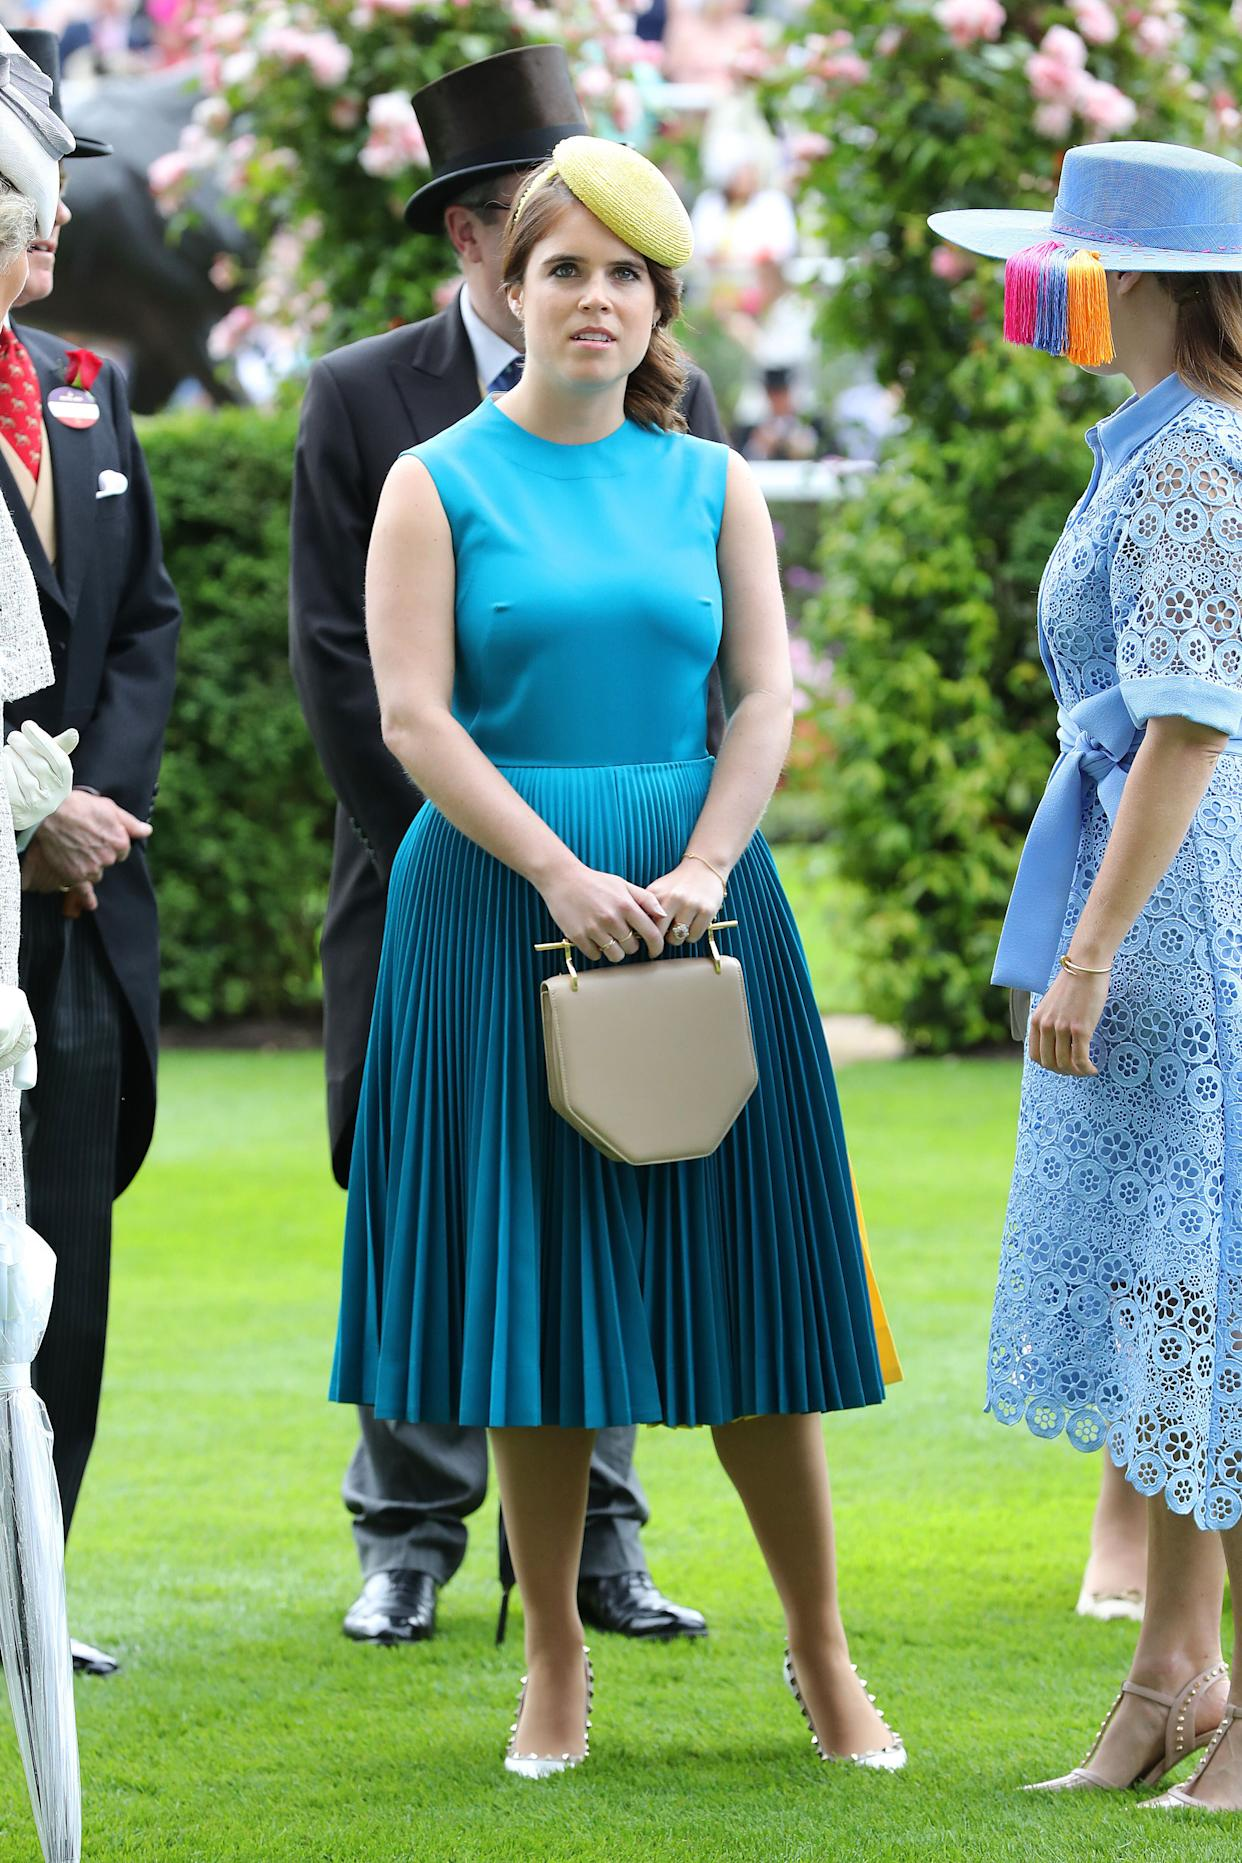 Princess Eugenie paired her teal blue dress with a bright yellow hat and a neutral clutch. (Photo: Chris Jackson via Getty Images)